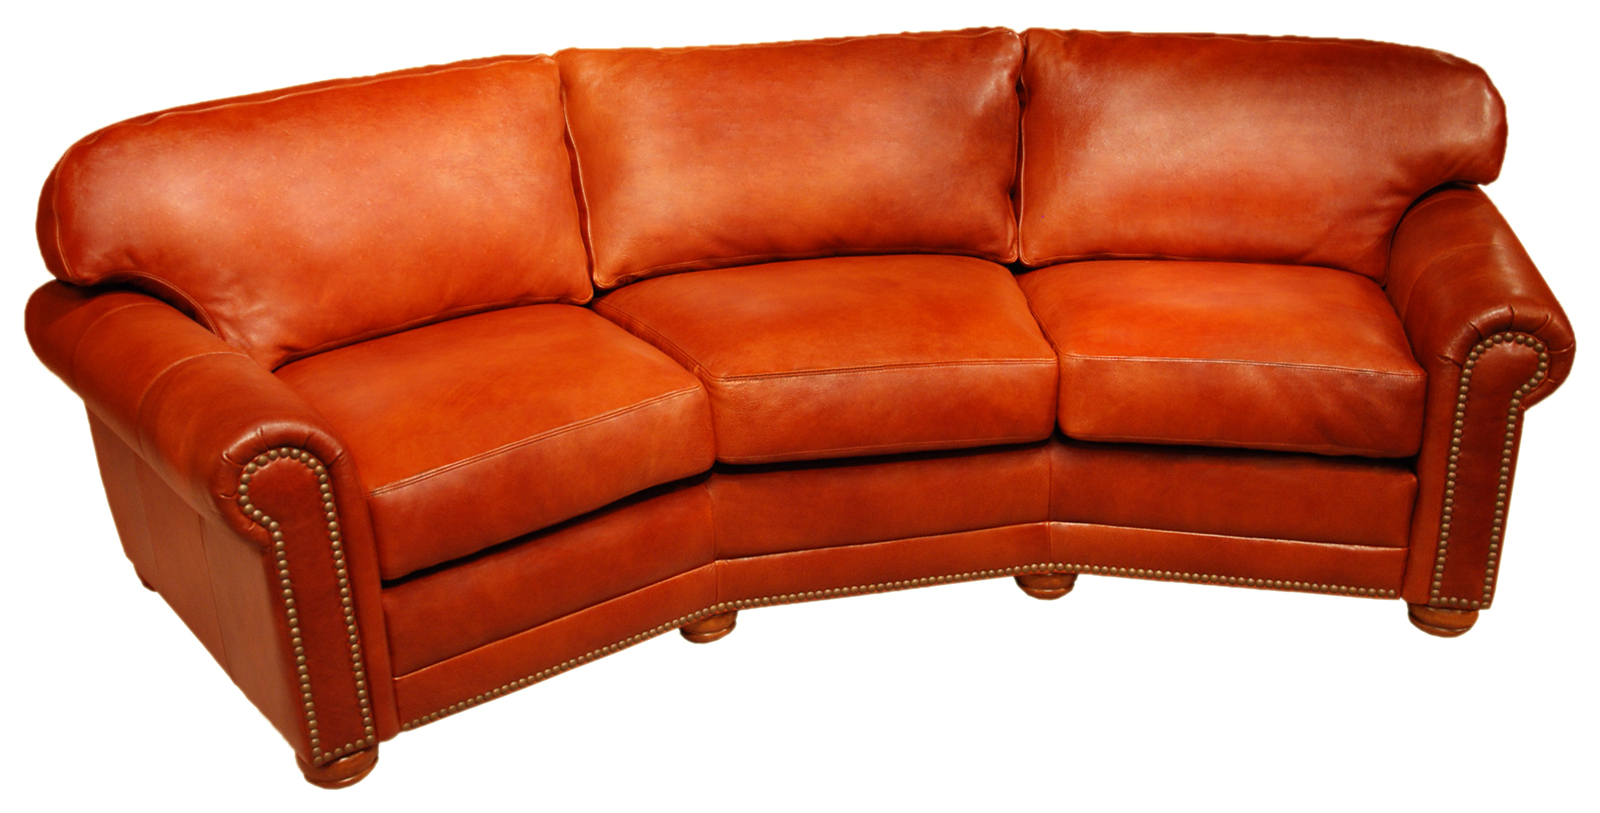 Dominion 3 seat conversation sofa arizona leather interiors for Conversation sofa